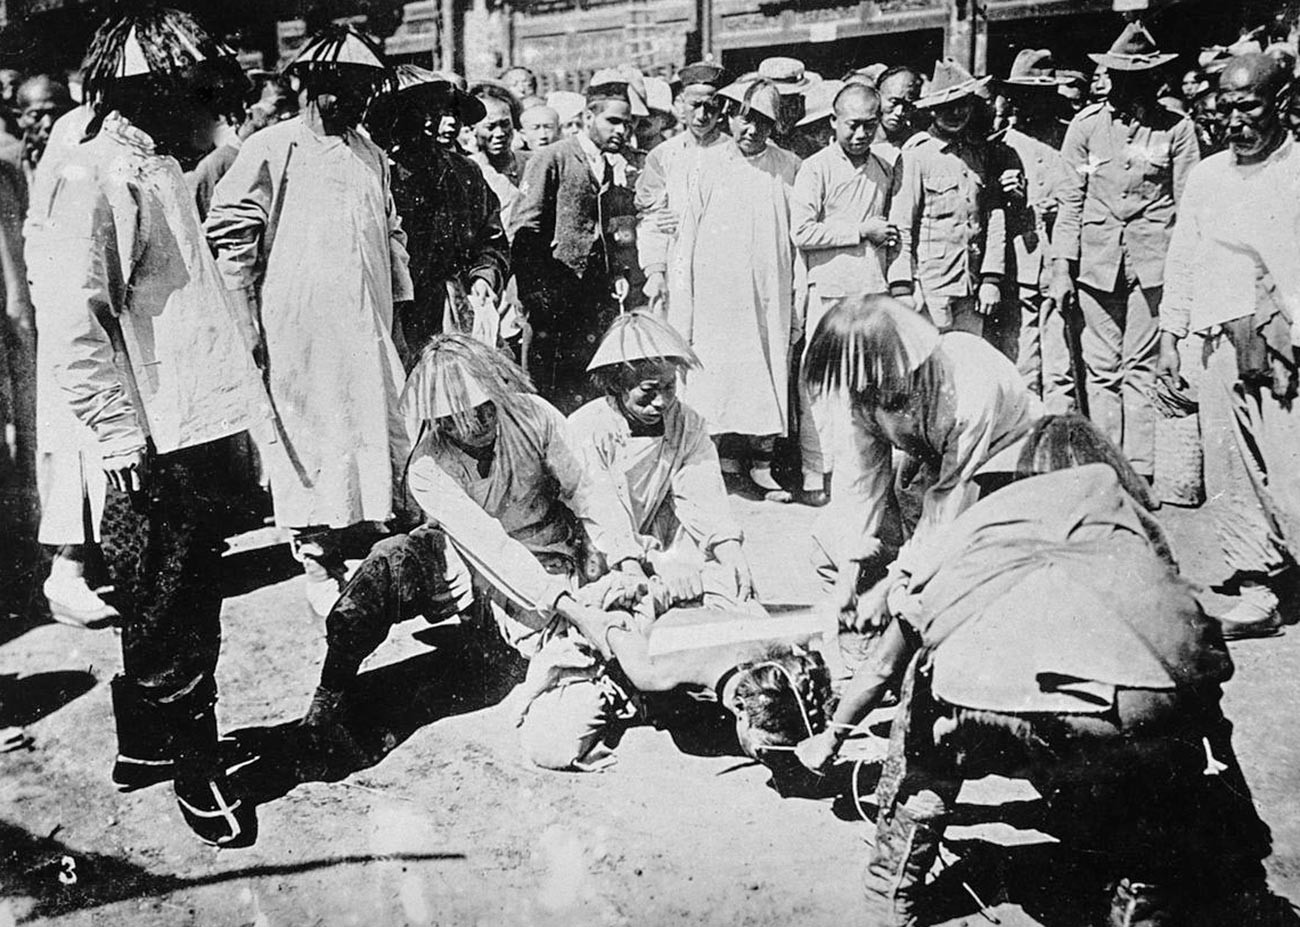 A Boxer being beheaded infront of a crowd of Chinese.